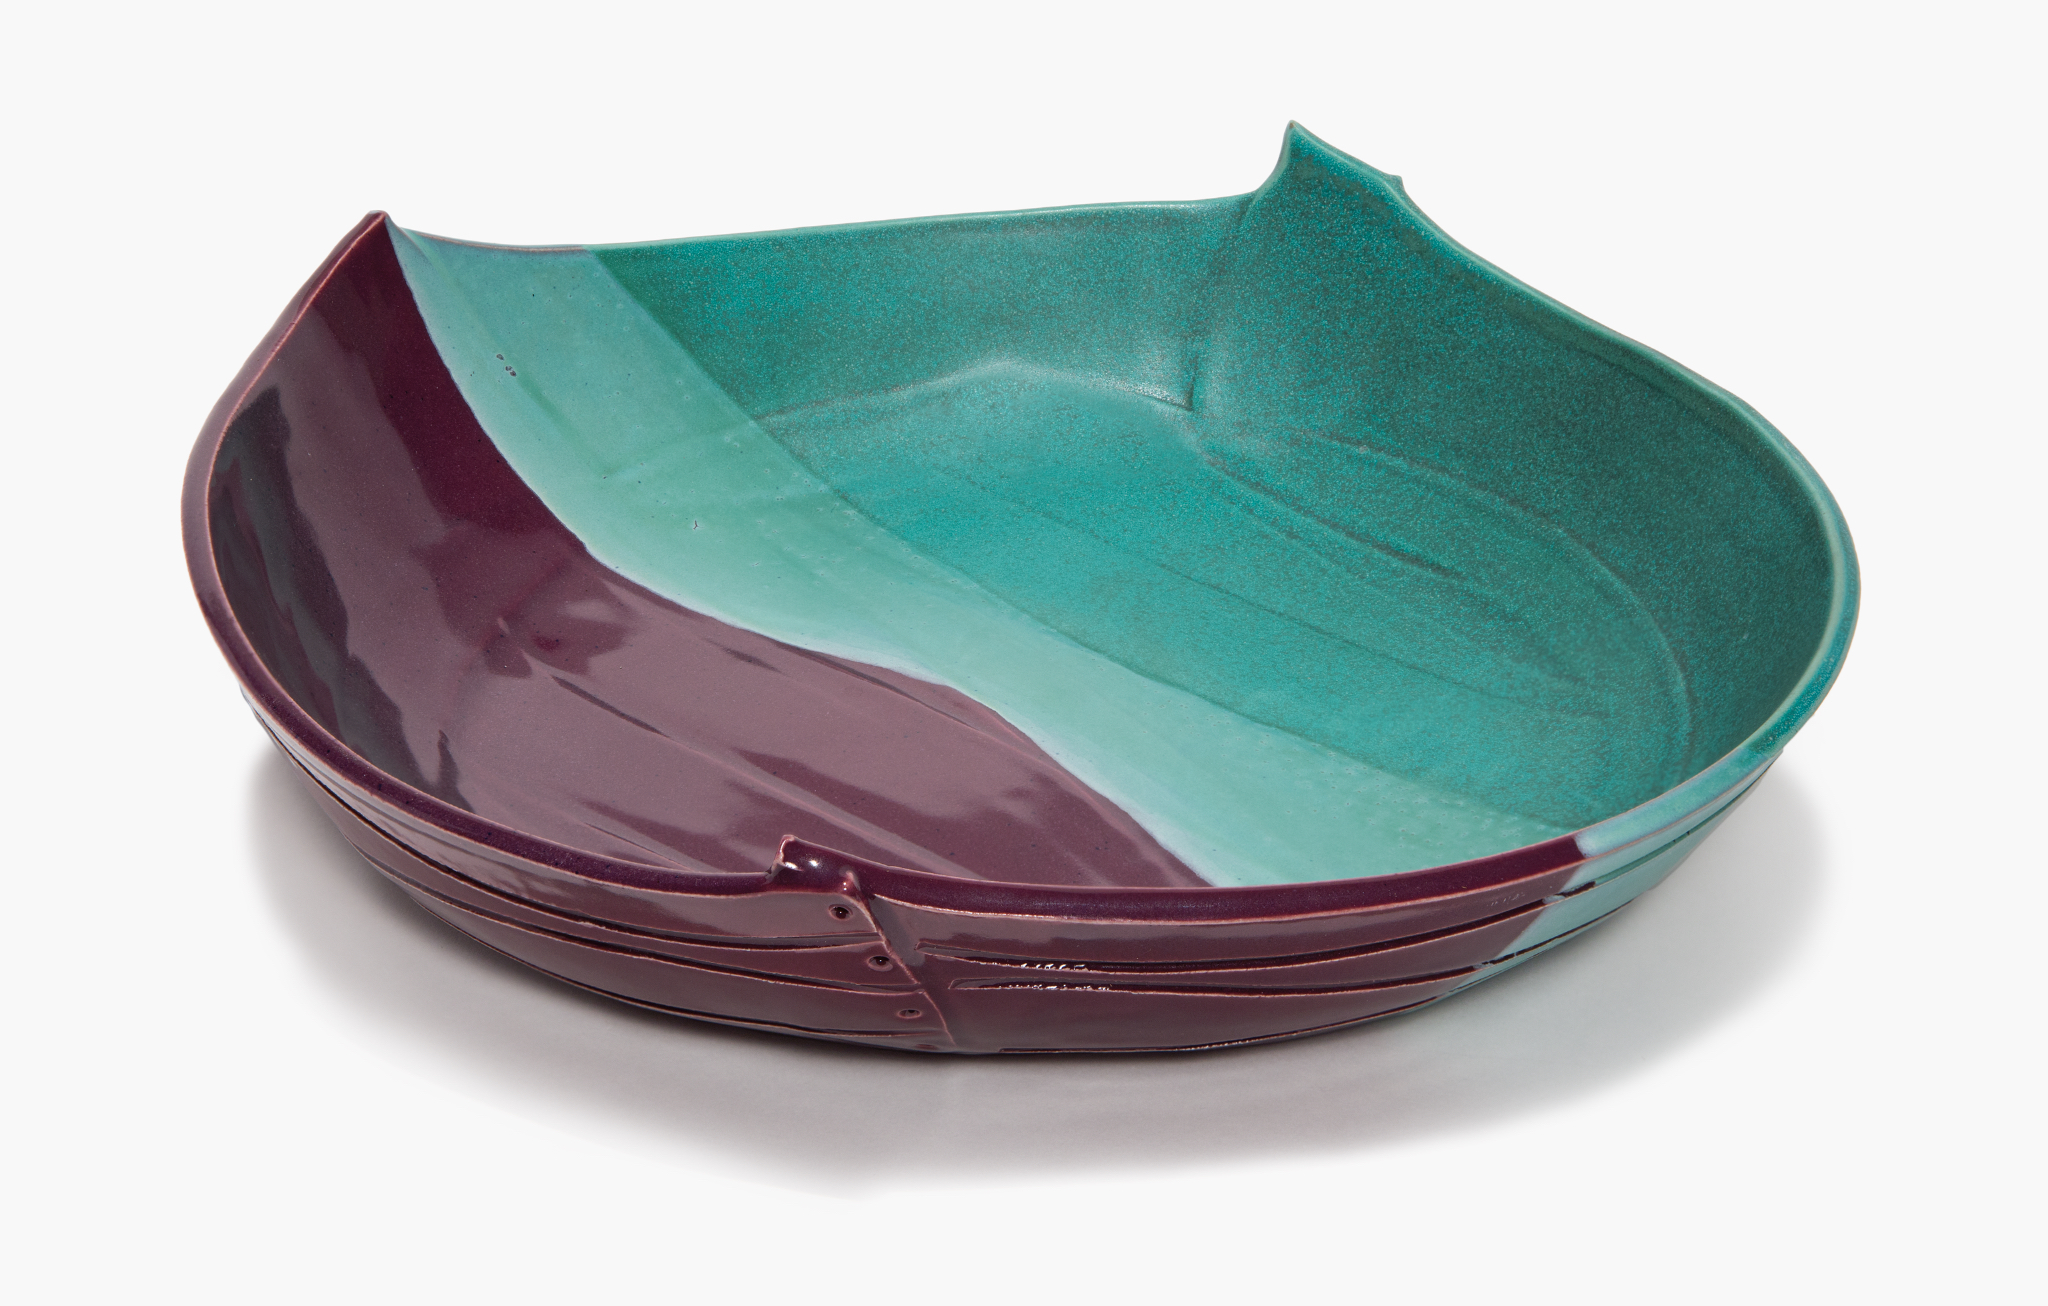 Platter in Teal and Plum